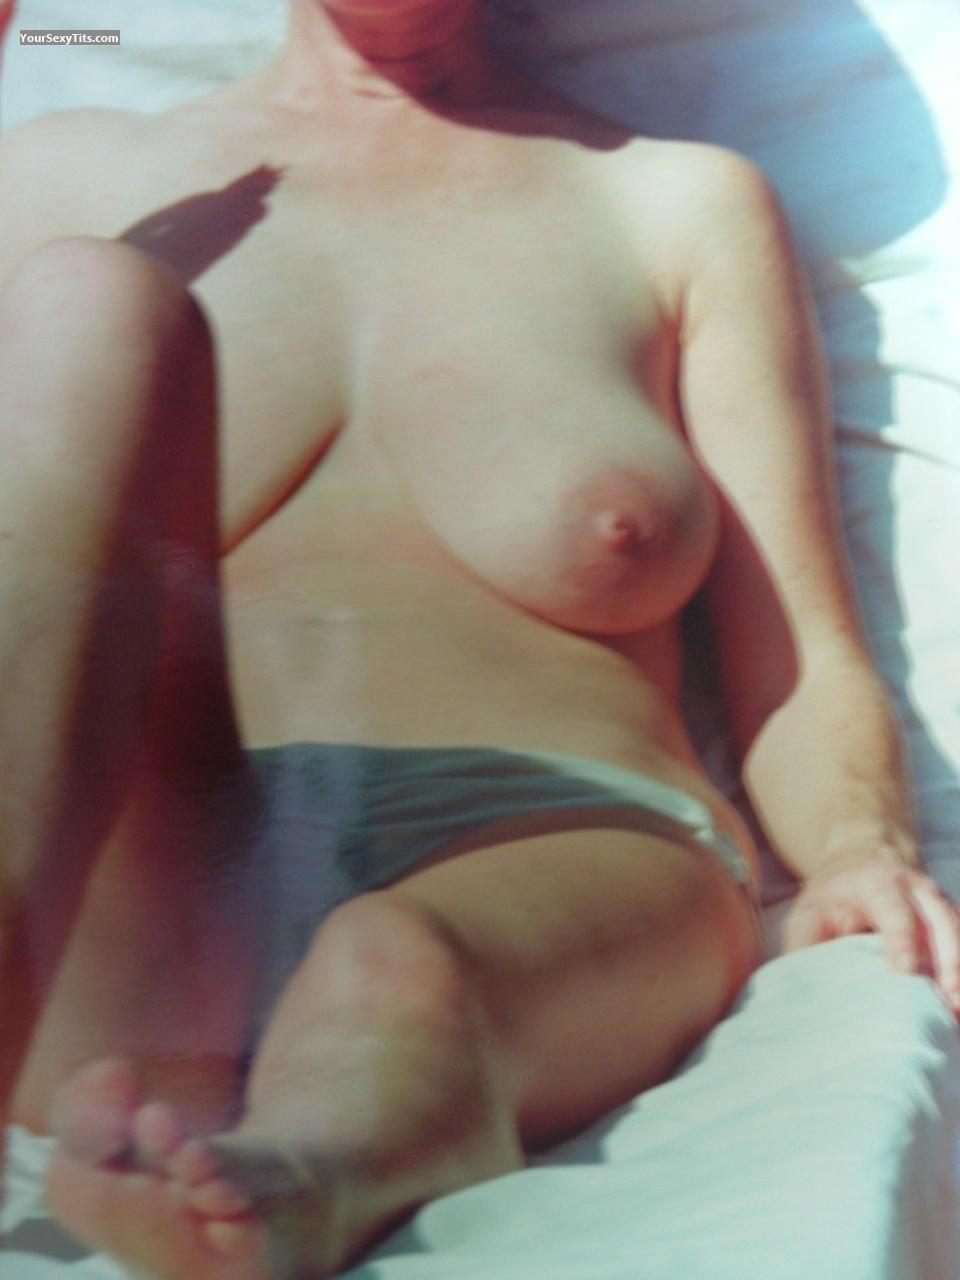 Tit Flash: Wife's Very Big Tits - Jen from United Kingdom